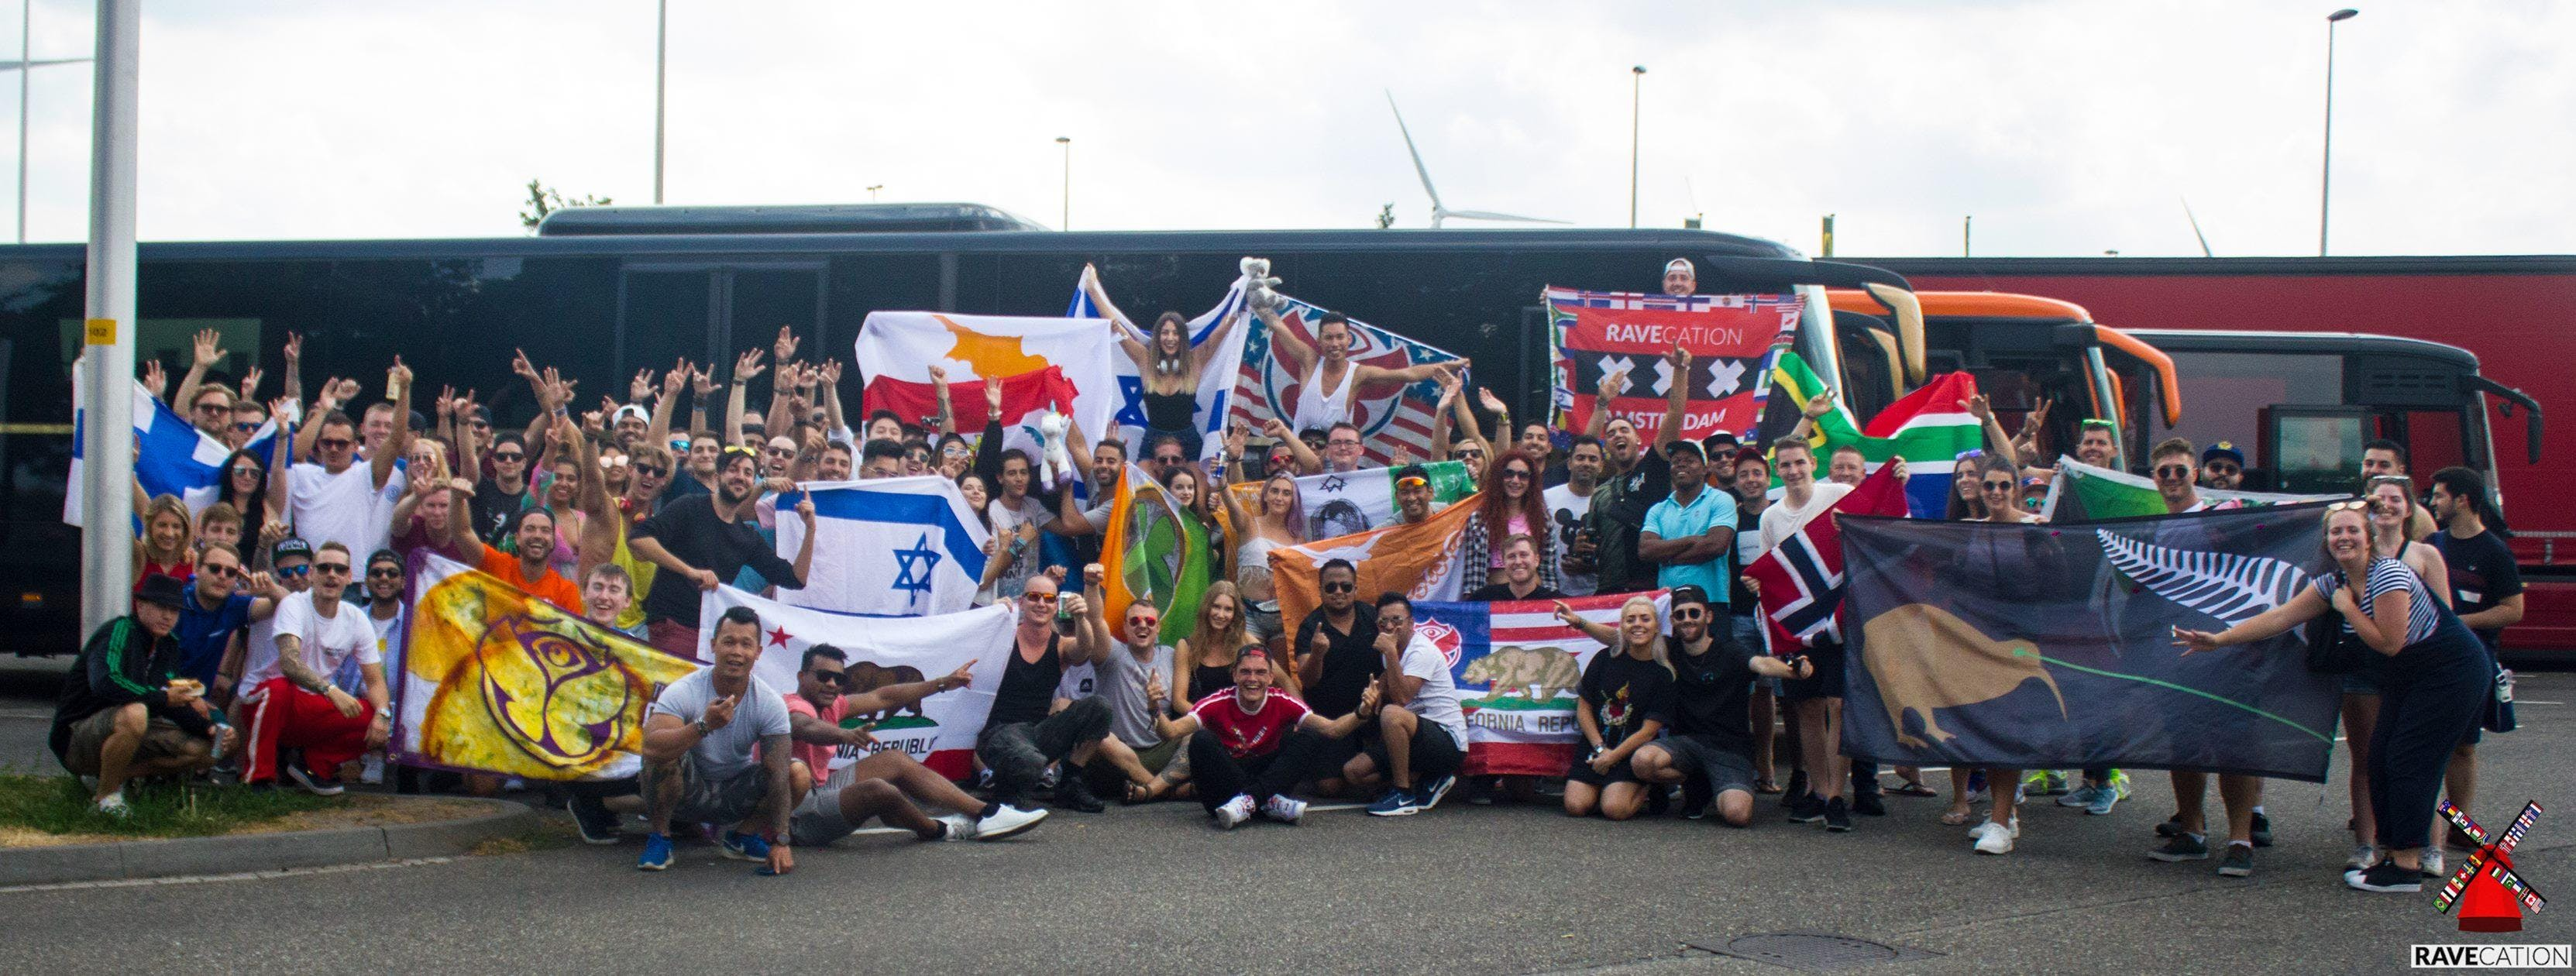 ASOT 900 Amsterdam Party Bus